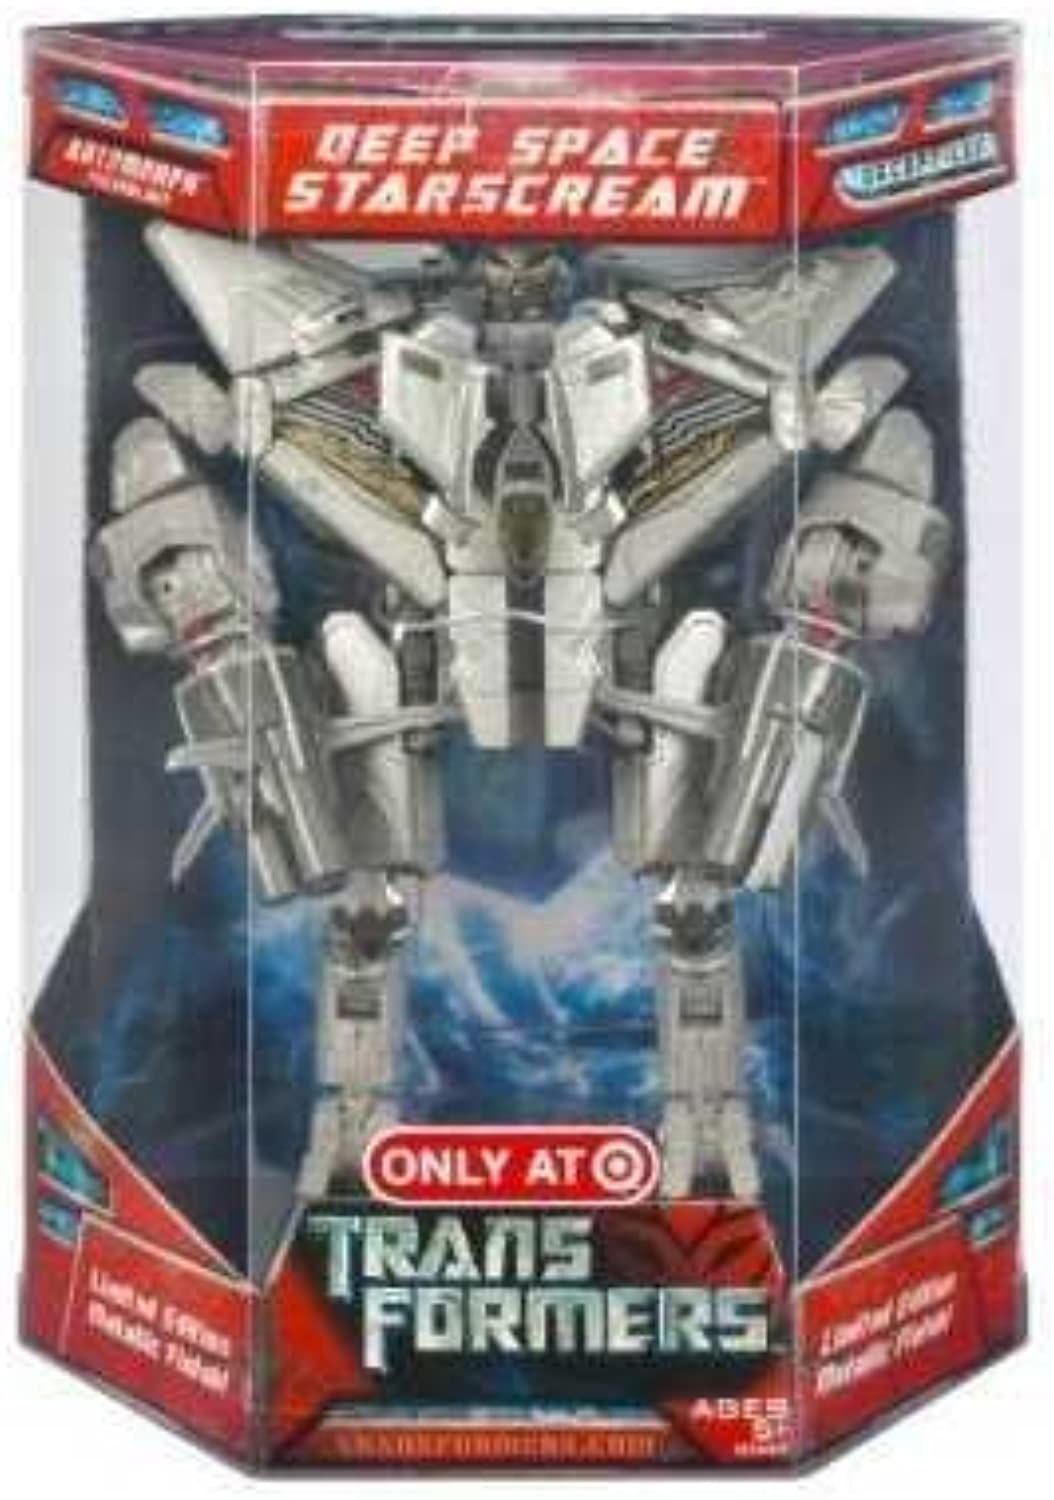 TRANSFORMERS - EXCLUSIVE - LIMITED EDTION METALLIC FINISH - DECEPTION - DEEP SPACE STARSCREAM